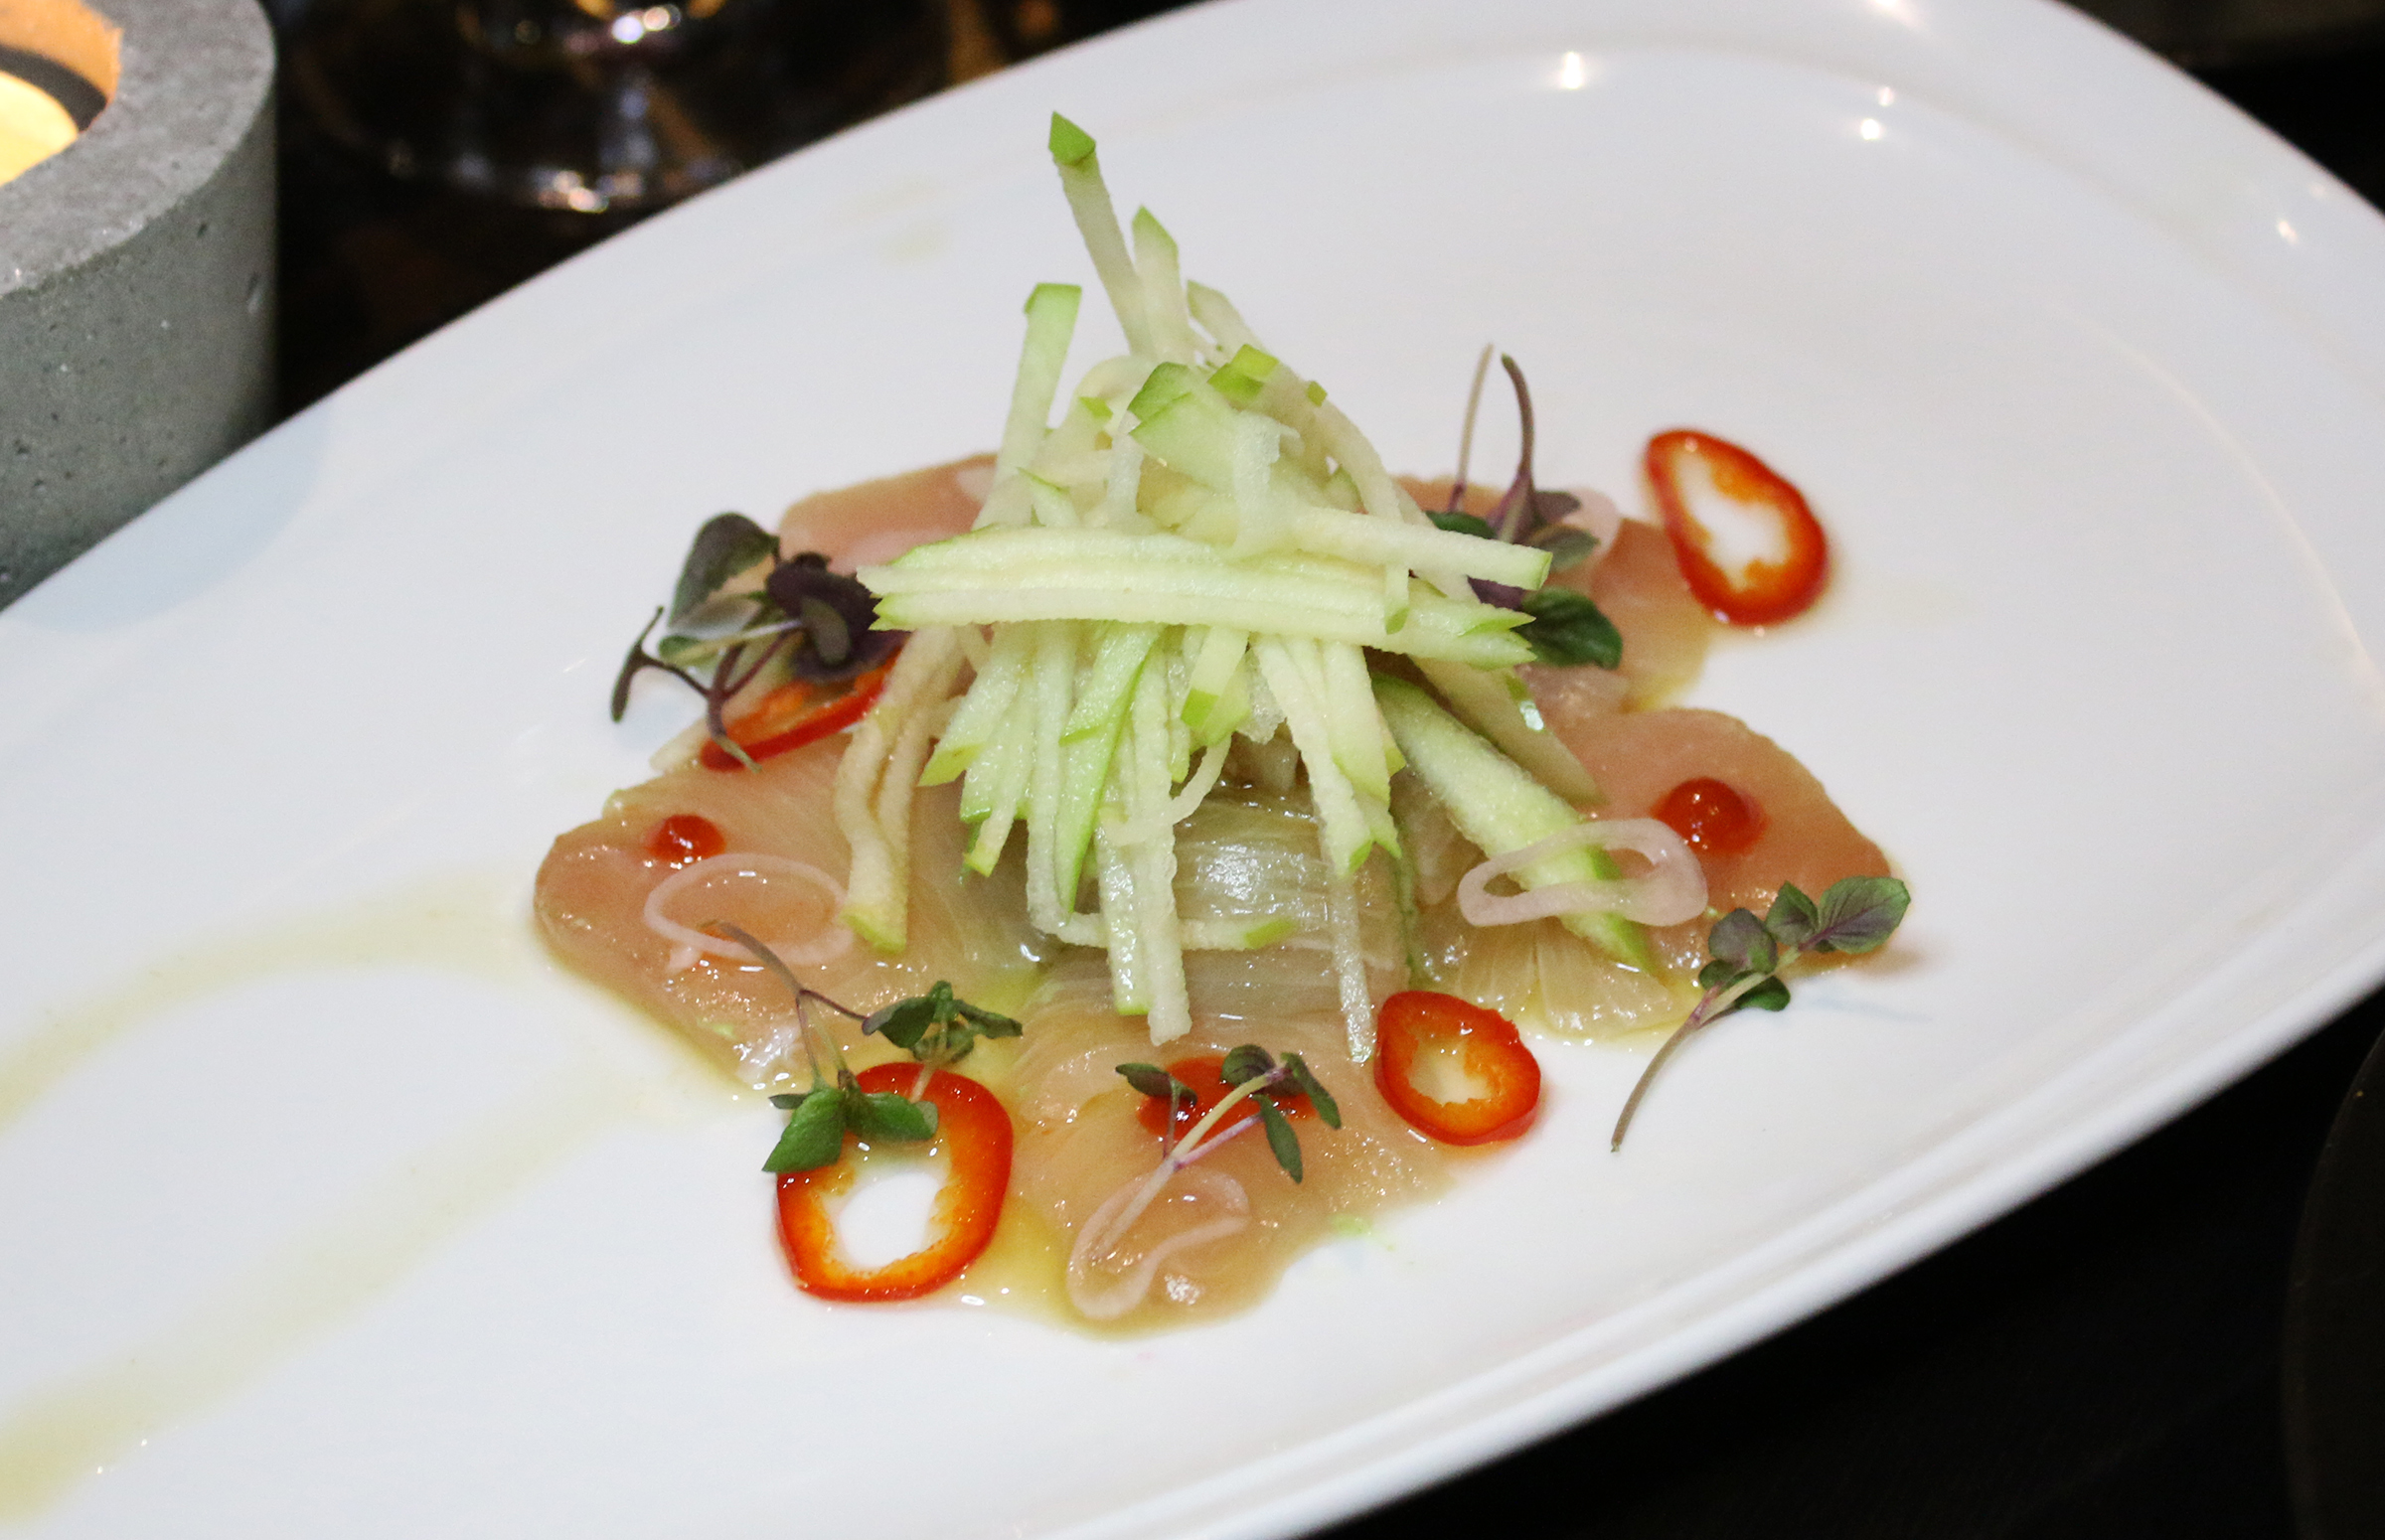 Yellow Tail: Avocado Puree, Pickled Shallots, Radish, Soy Yuzu Vinaigrette